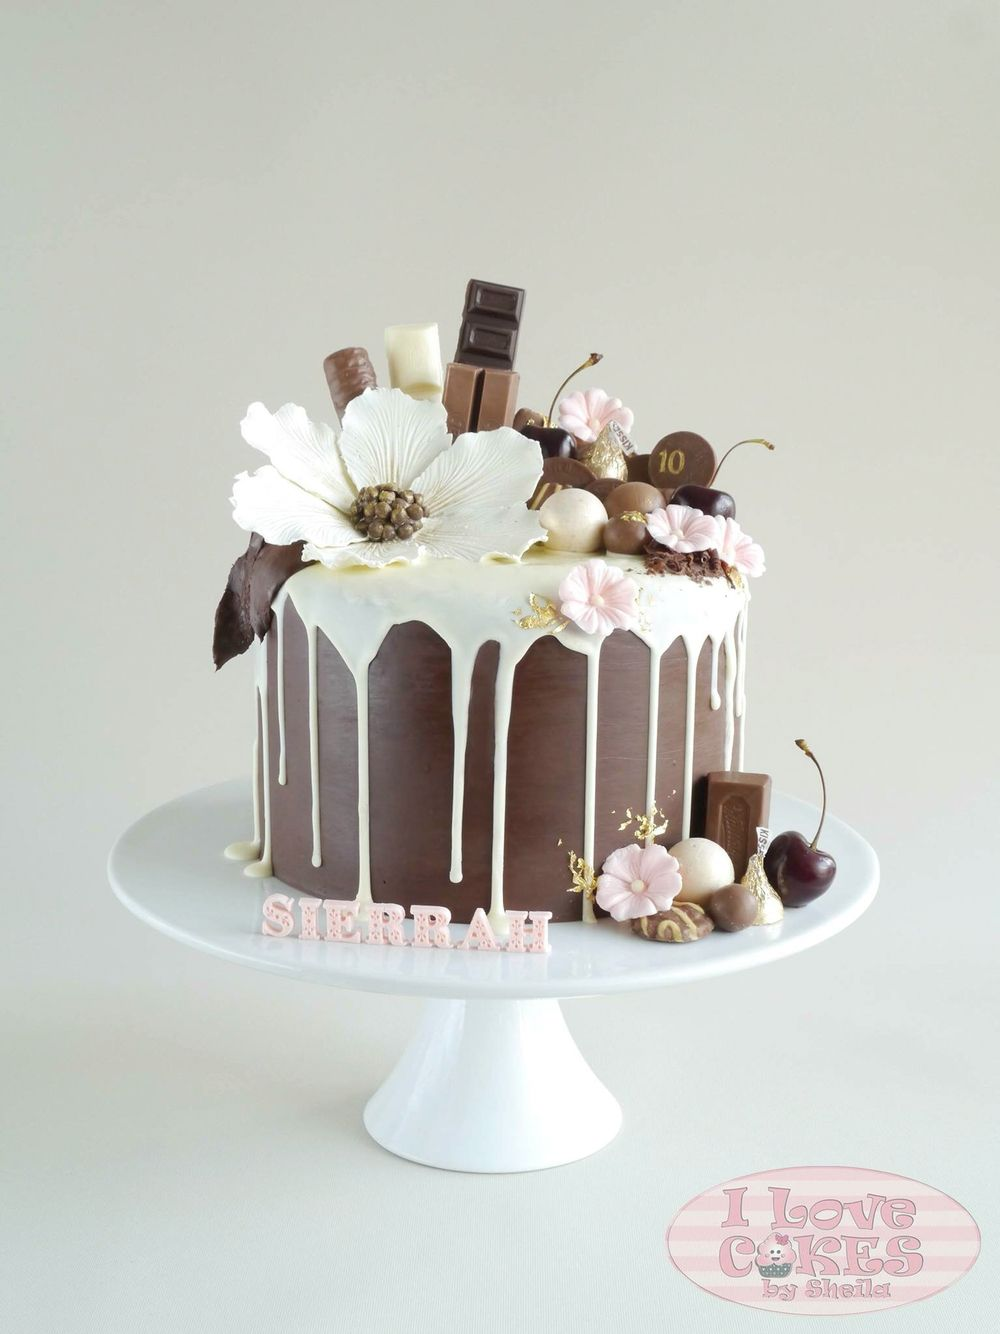 Pin by Phil Fahy on Creative Pinterest Cake Drip cakes and